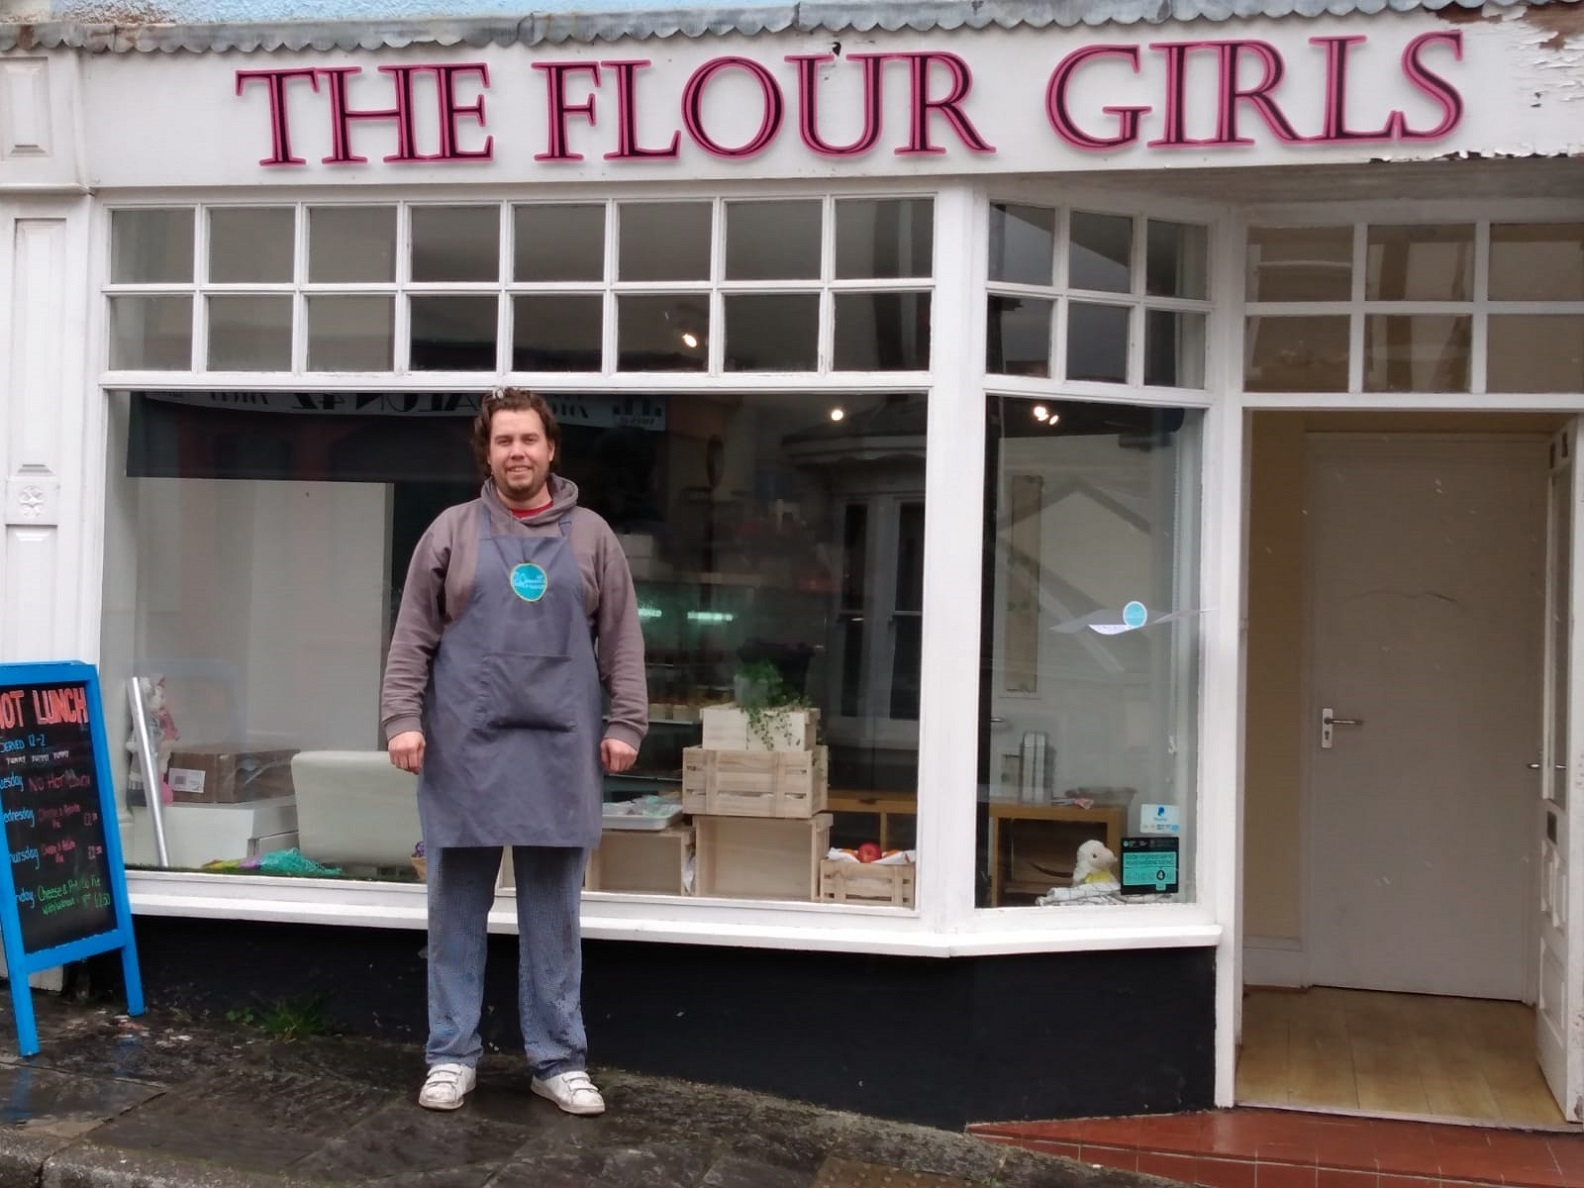 Chris O'Connell, who along with his wife Rhian, owns The Flour Girls in Blaenavon.